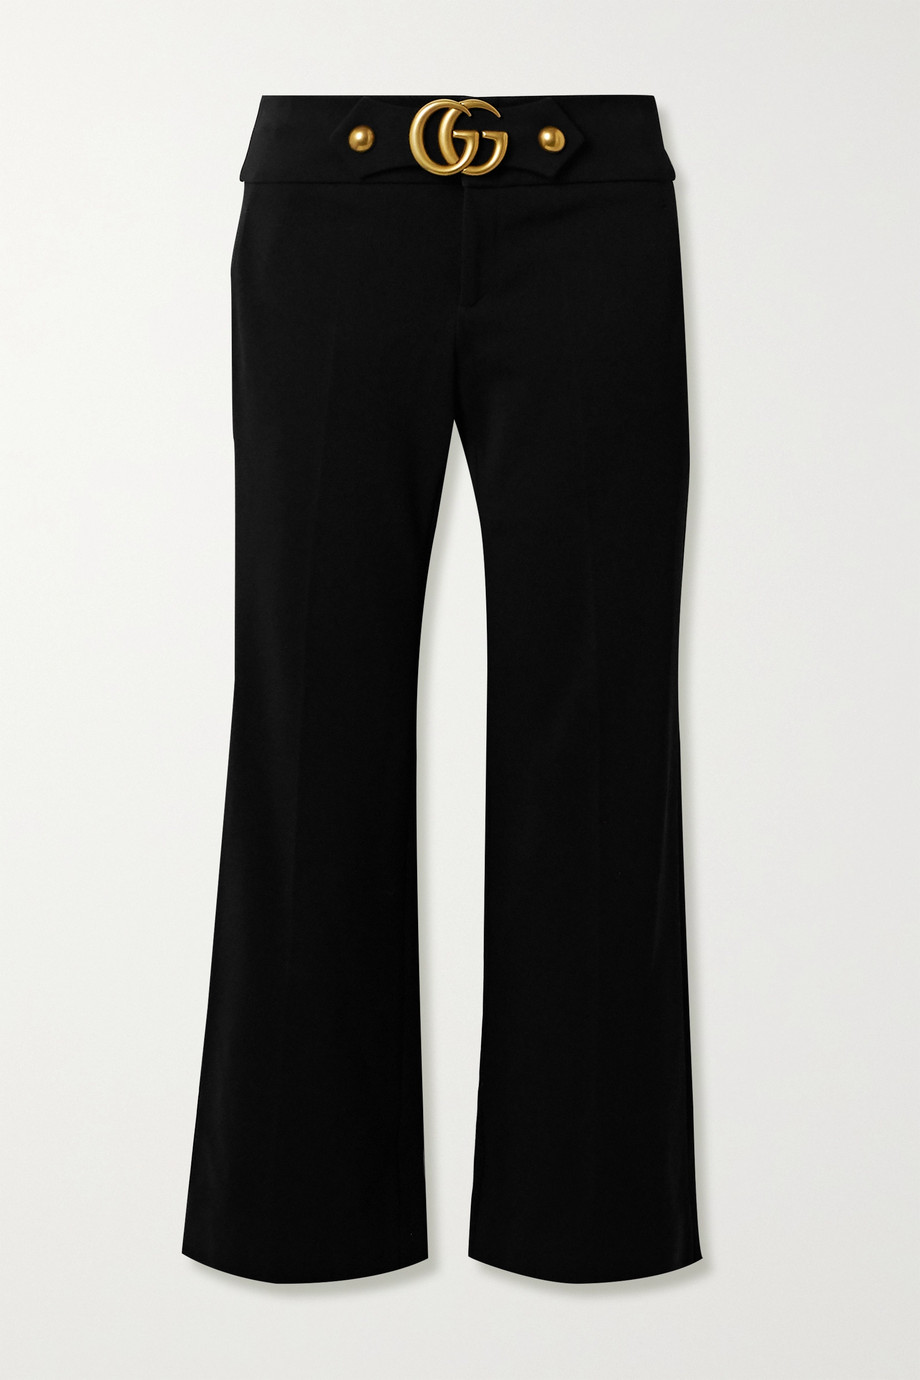 GUCCI Embellished stretch-crepe flared pants